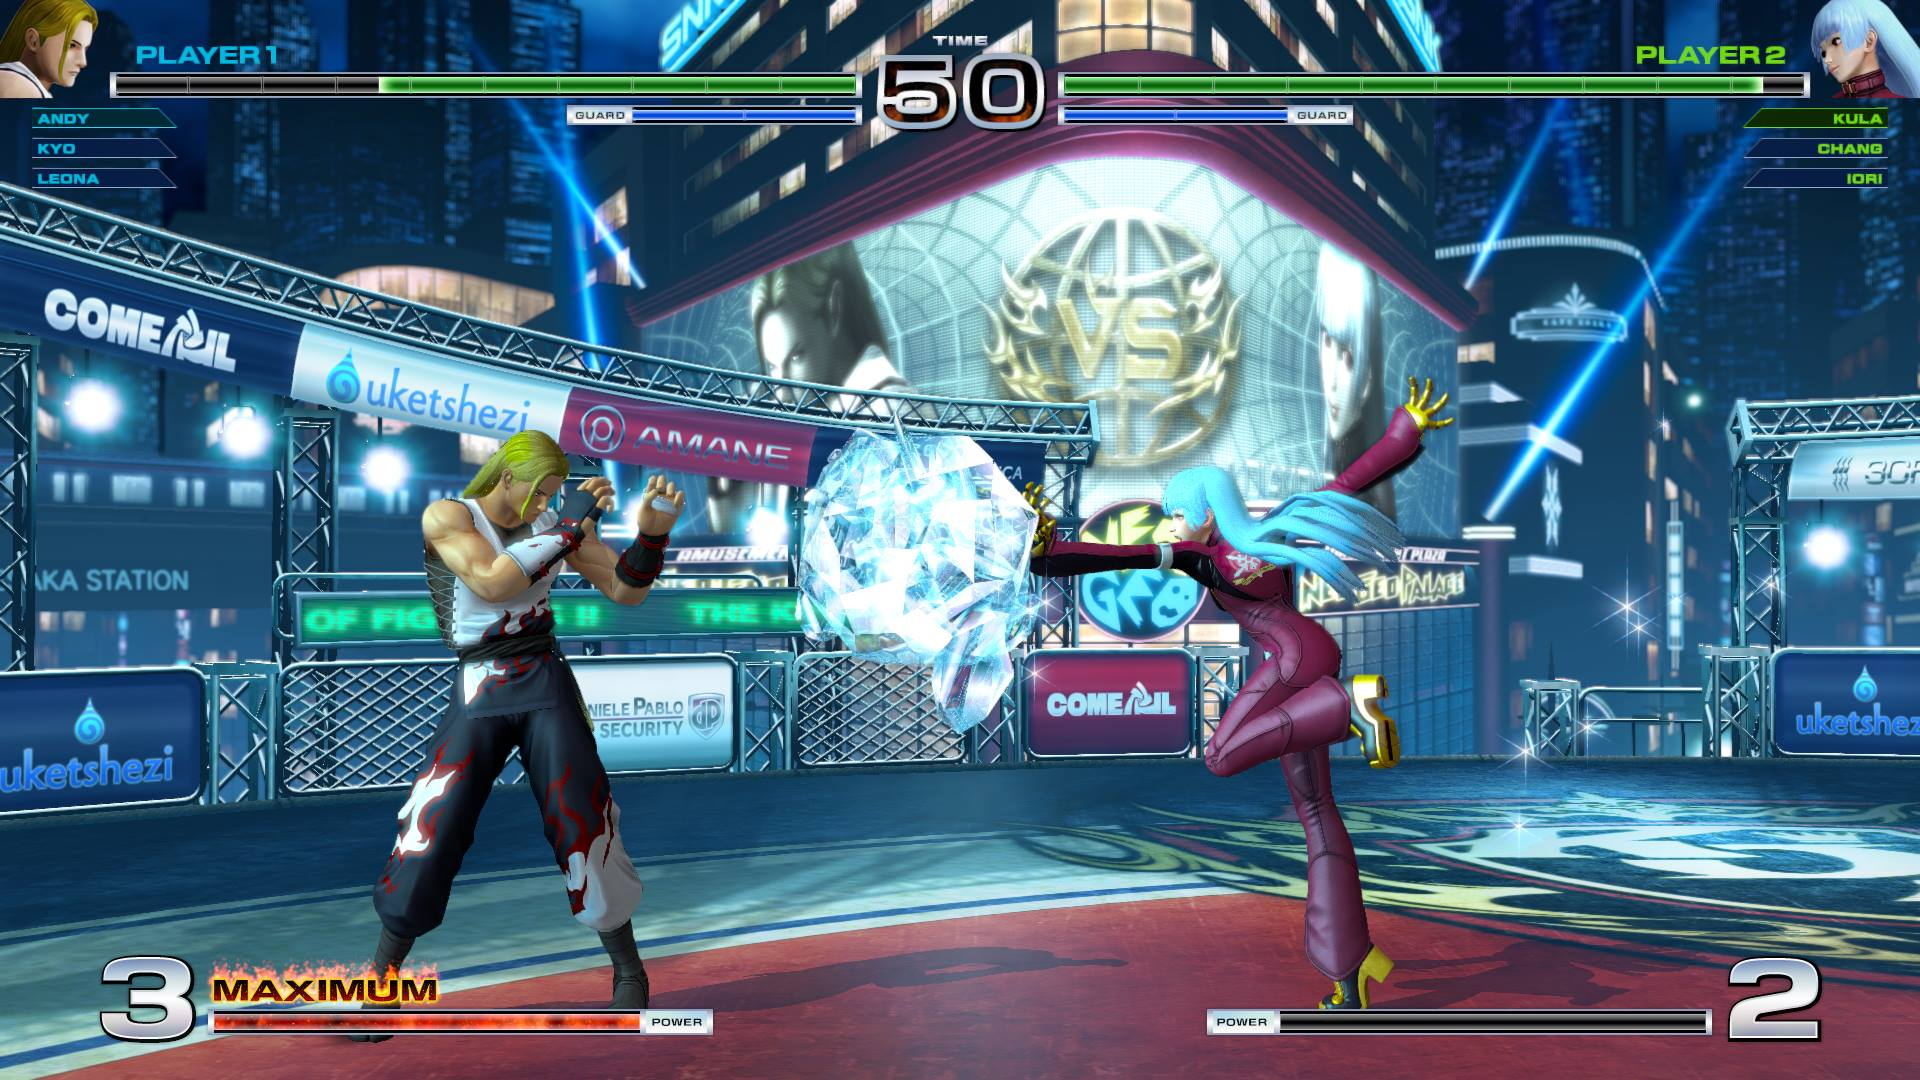 The King Of Fighters Xiv To Be Playable At The Taipei Game Show 2016